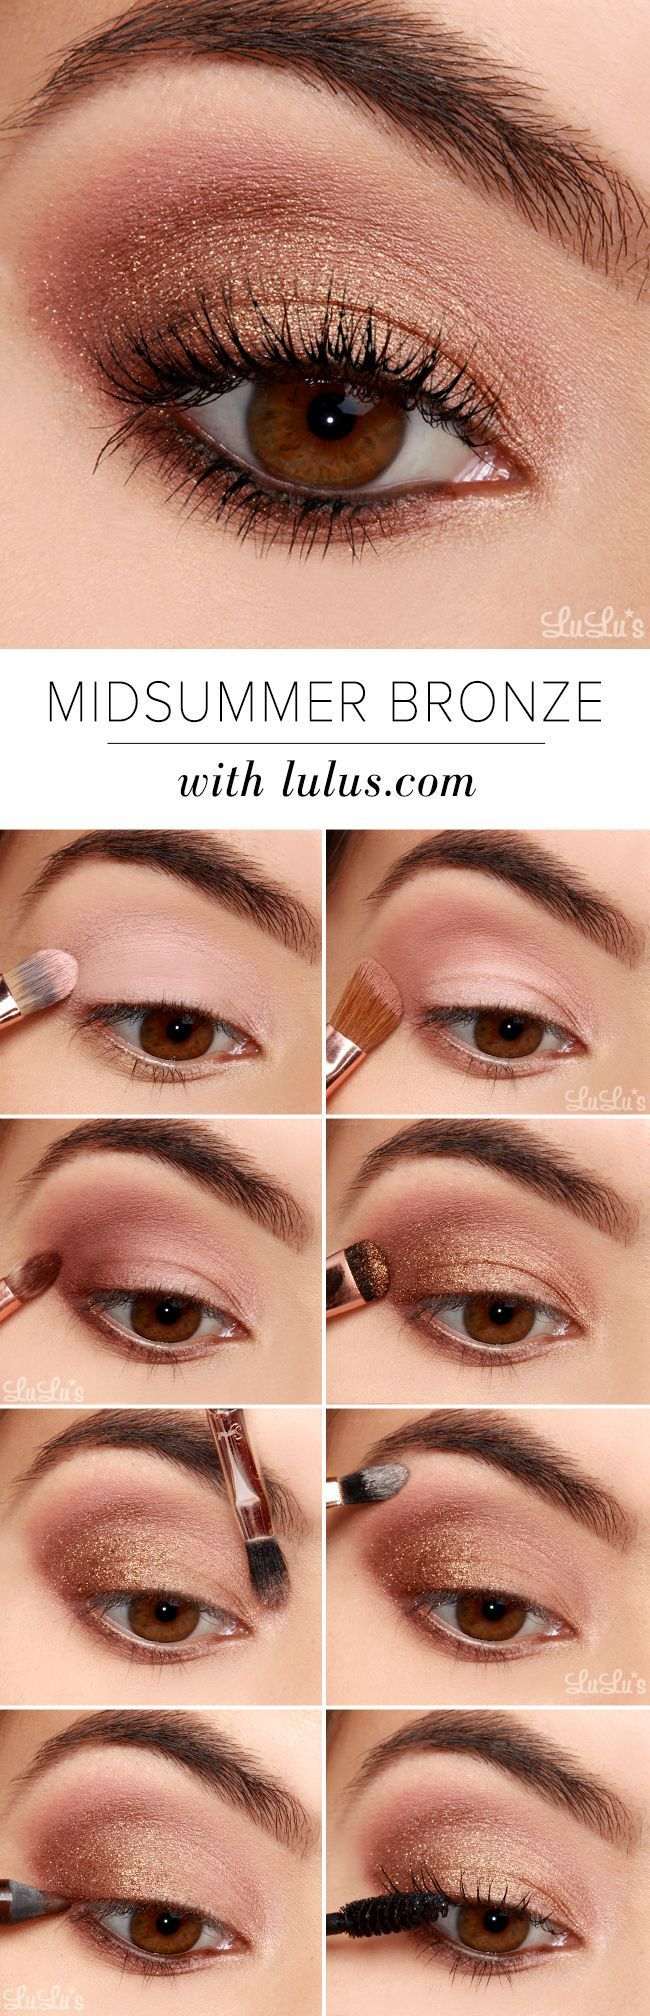 Photo of Lulus How-To: Mittsommer Bronze Lidschatten Tutorial – Lulus.com Fashion Blog